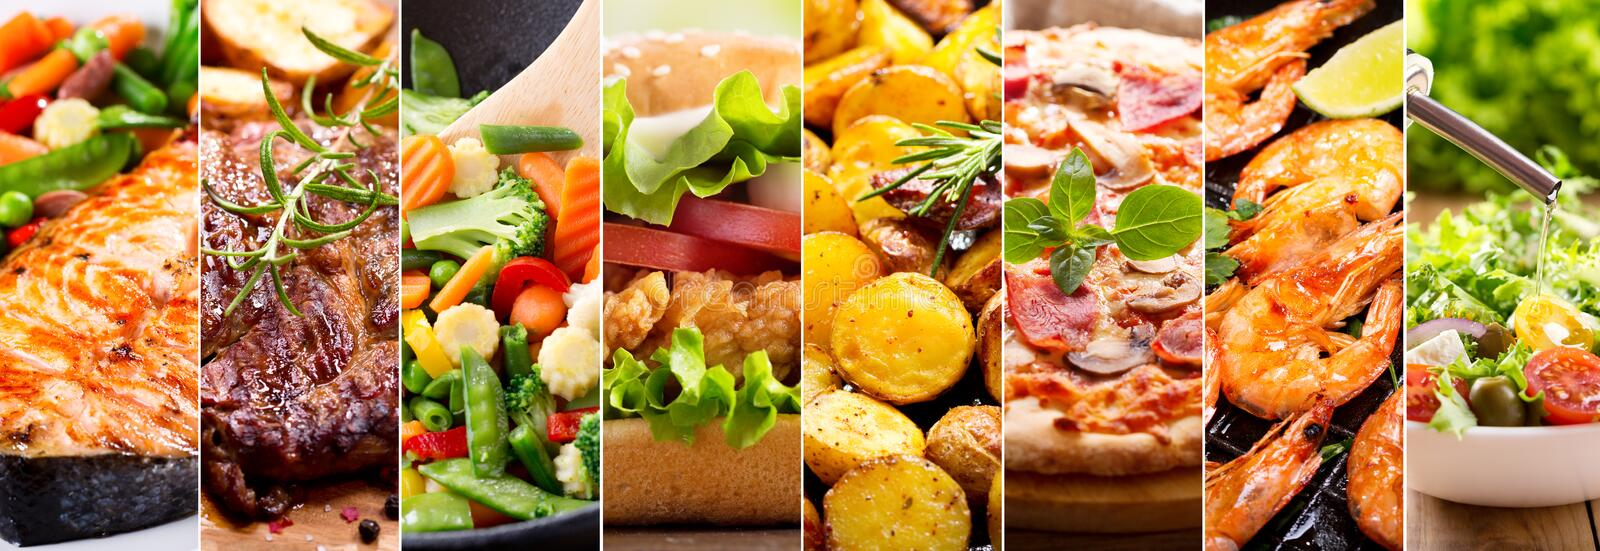 Collage of food products royalty free stock photos